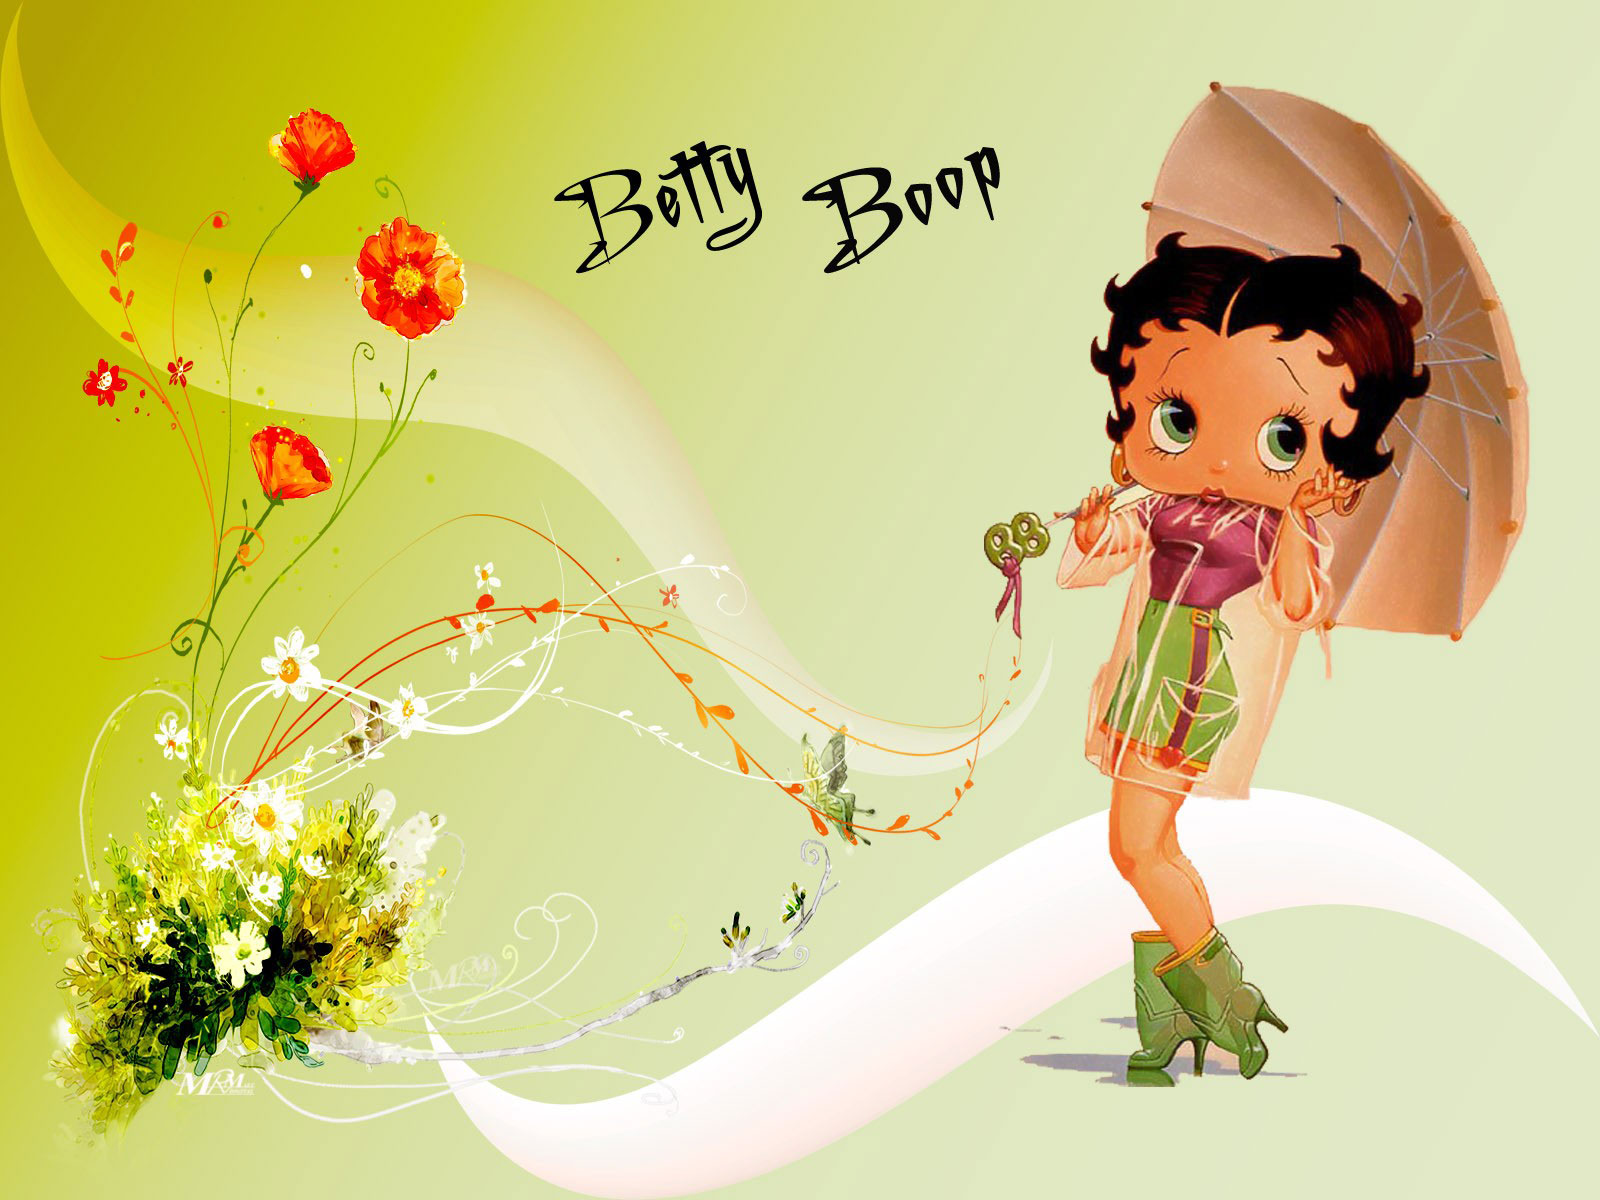 Free Download Betty Boop Wallpaper And Background Image